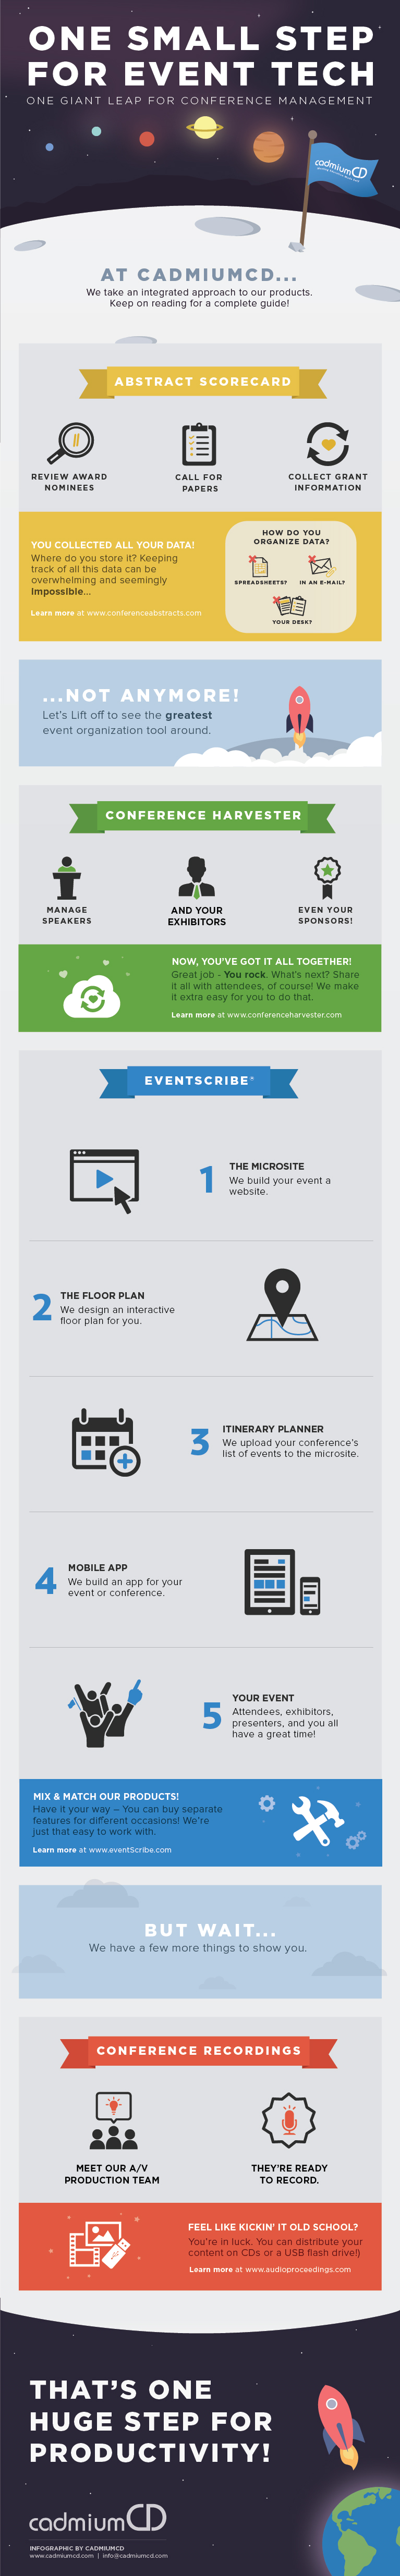 One Small Step for Conference Management Infographic